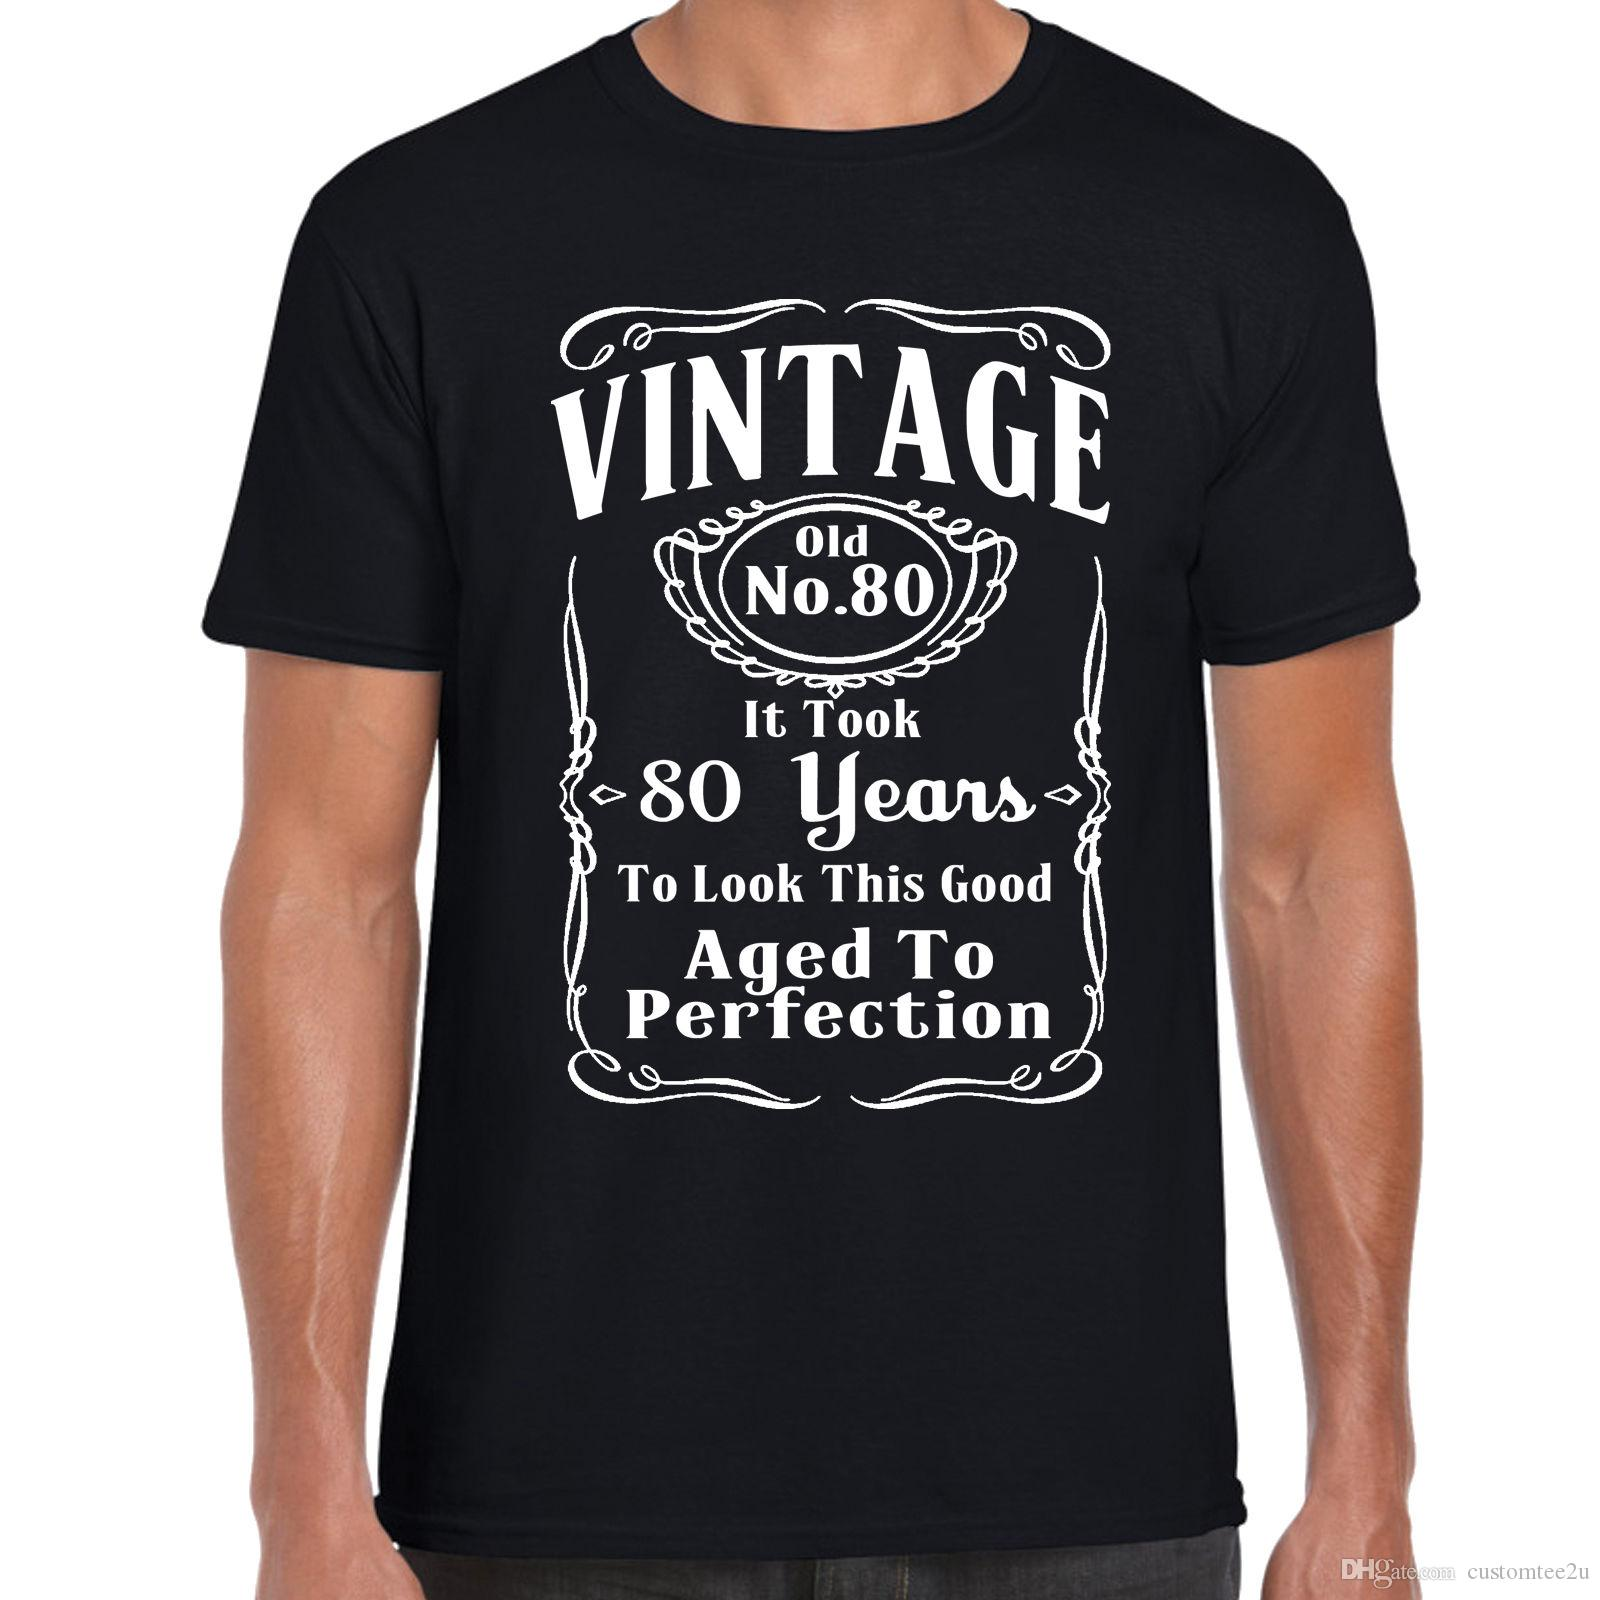 Vintage 80Th Birthday T Shirt FunnyGift 80 Years Old Retirment Fashion Tshirt Hipster Cool Tops Shirts Design Designs From Customtee2u